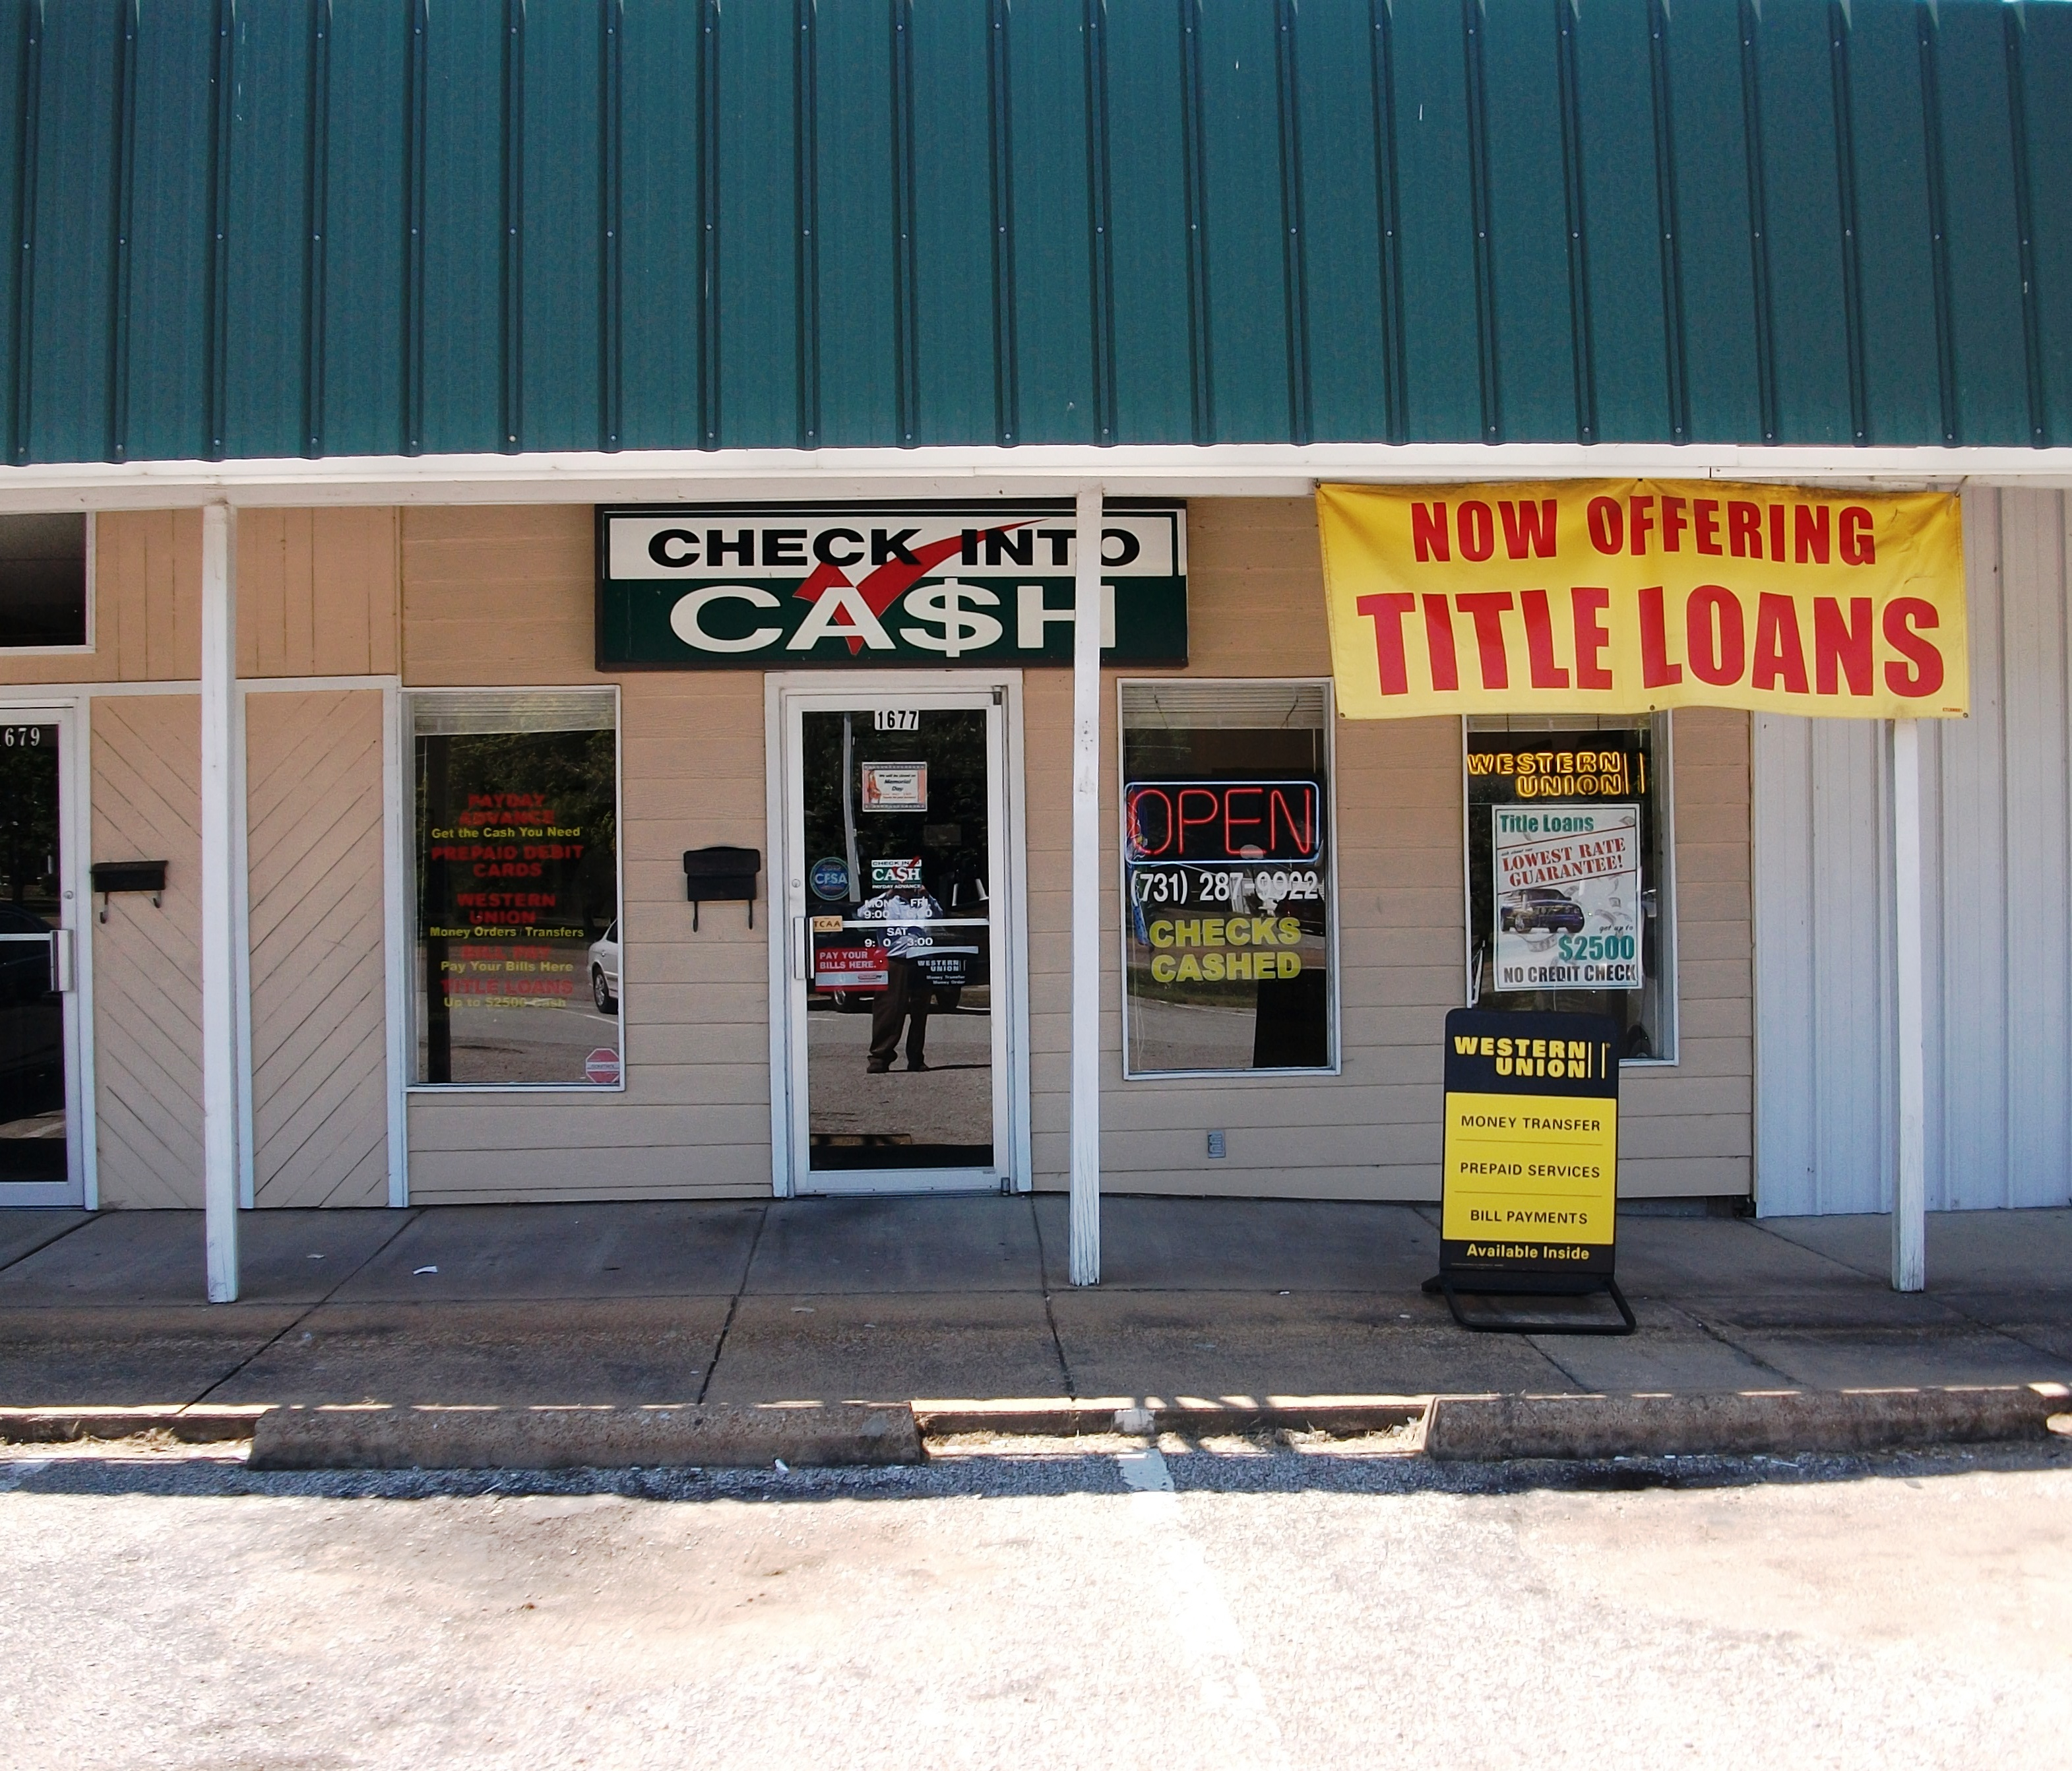 Cash advance el cajon blvd picture 8